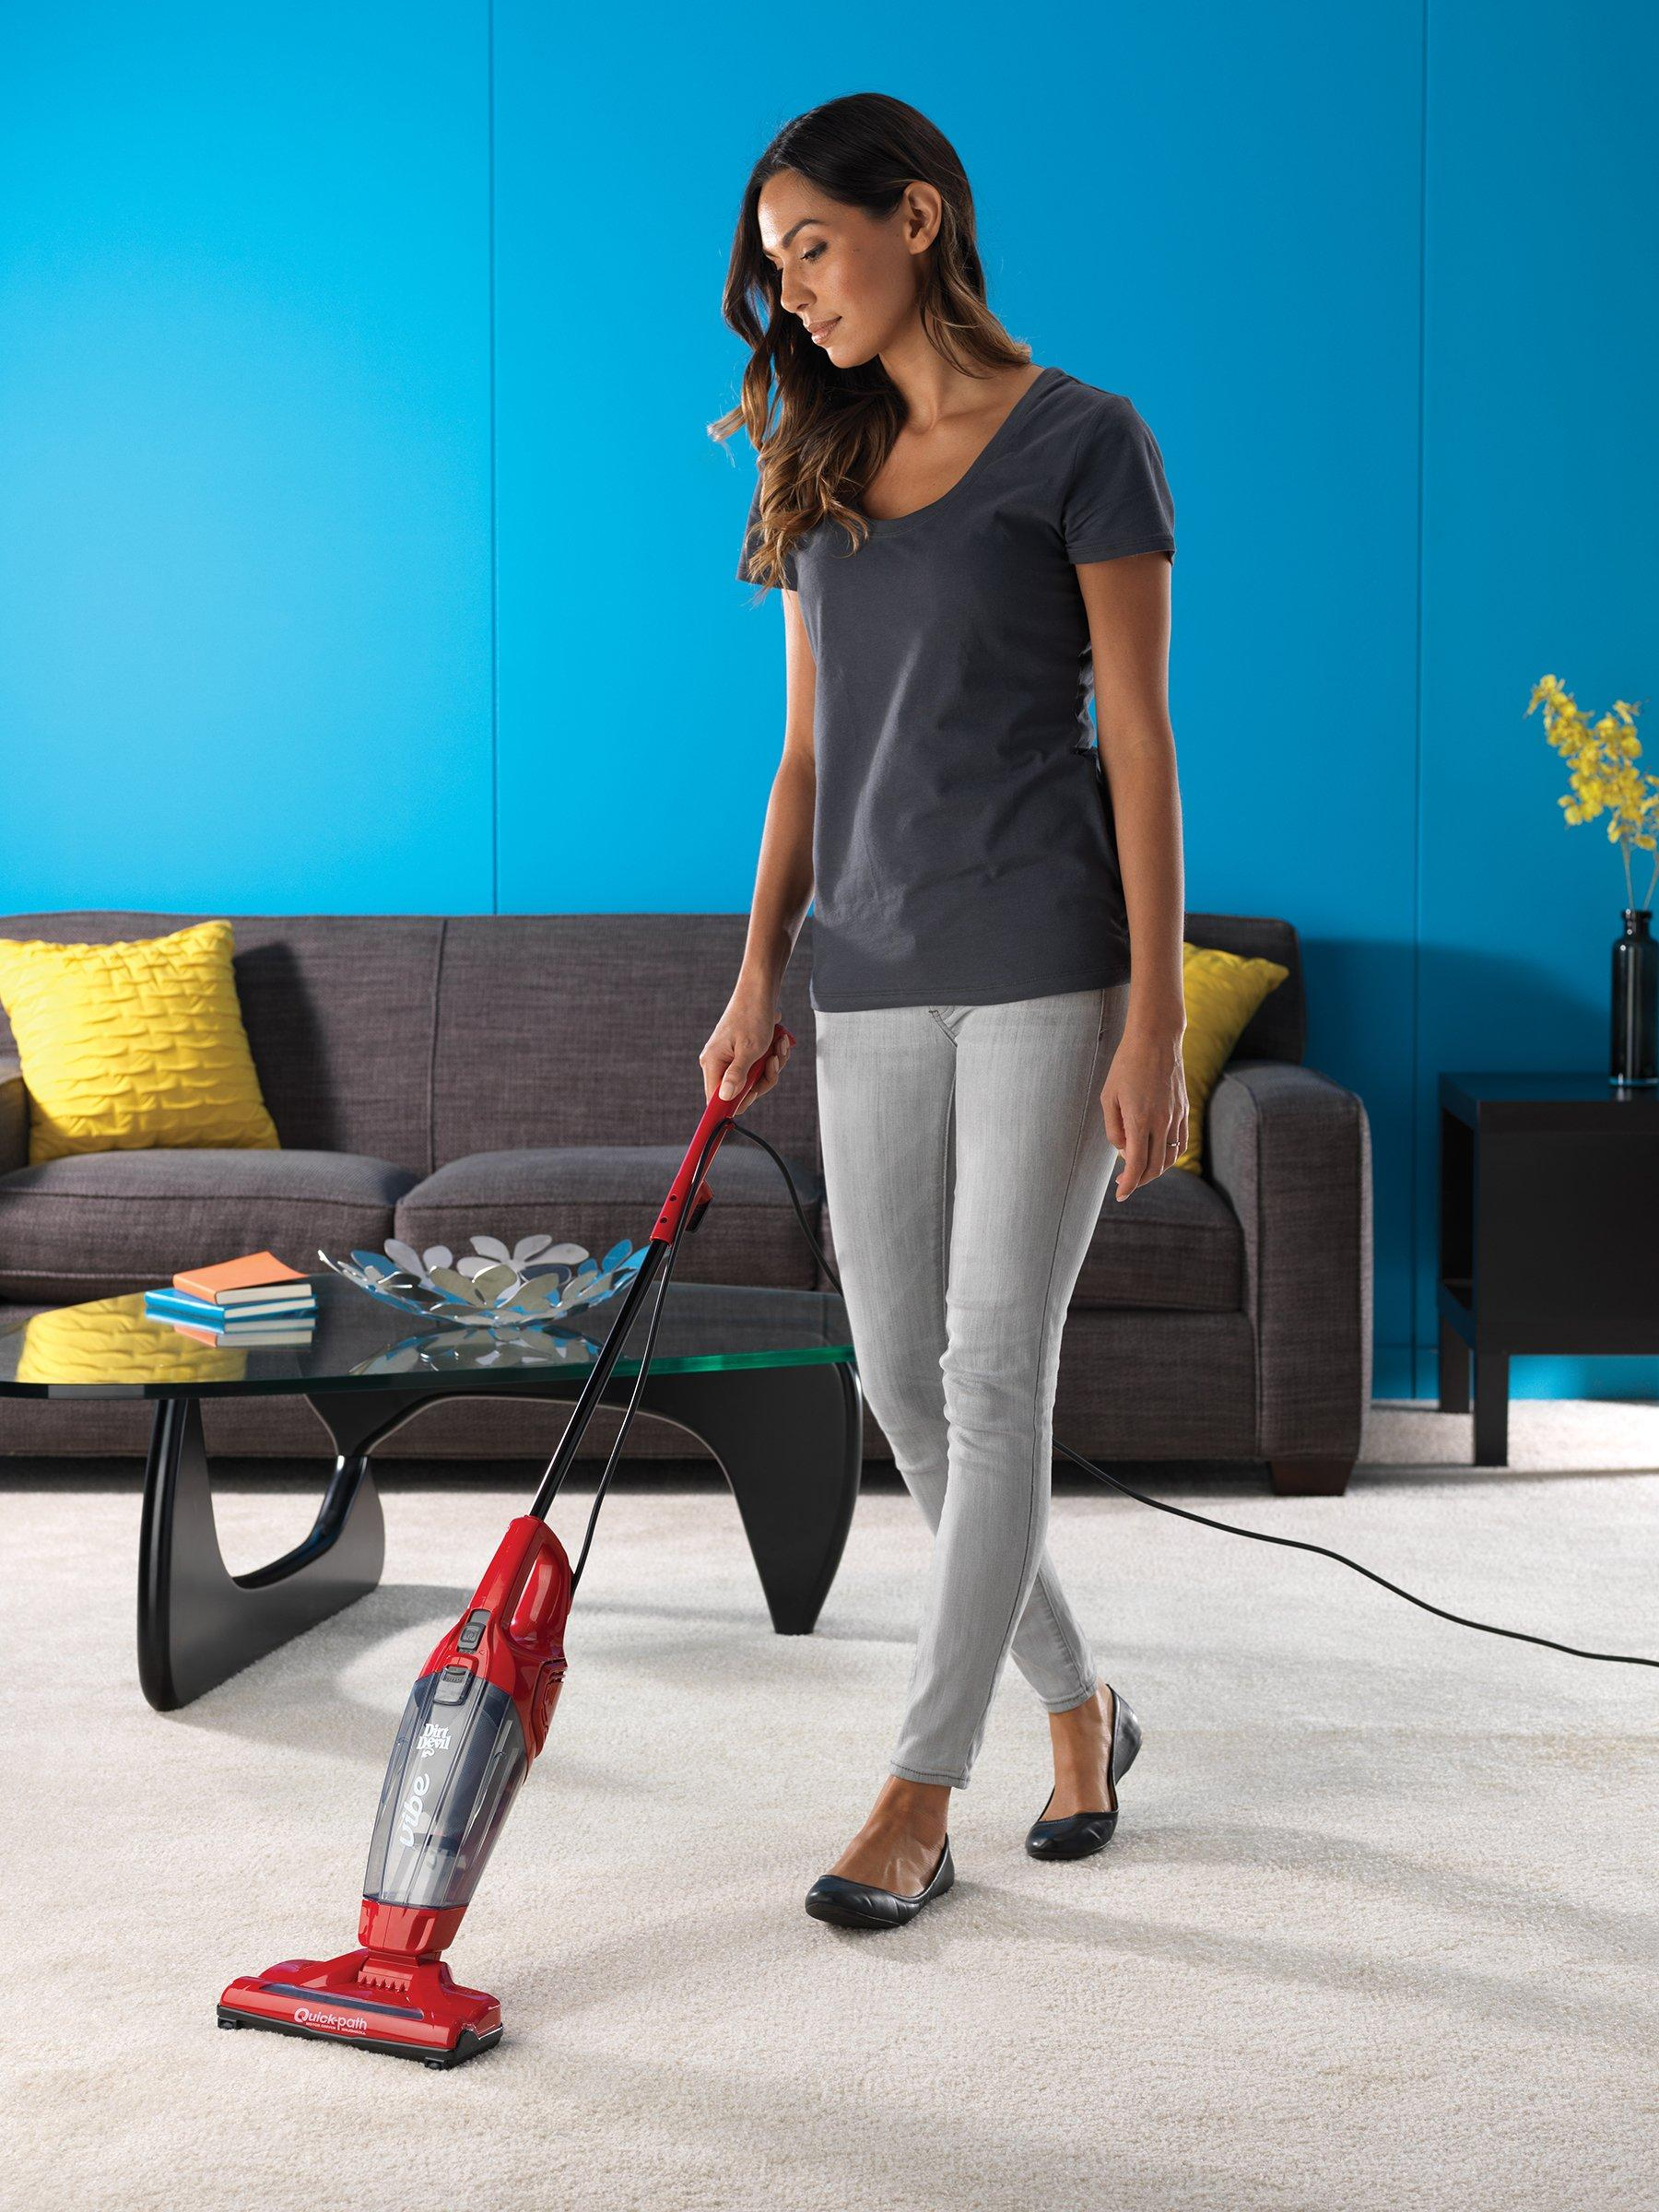 Vibe 3-in-1 Corded Bagless Stick Vacuum3